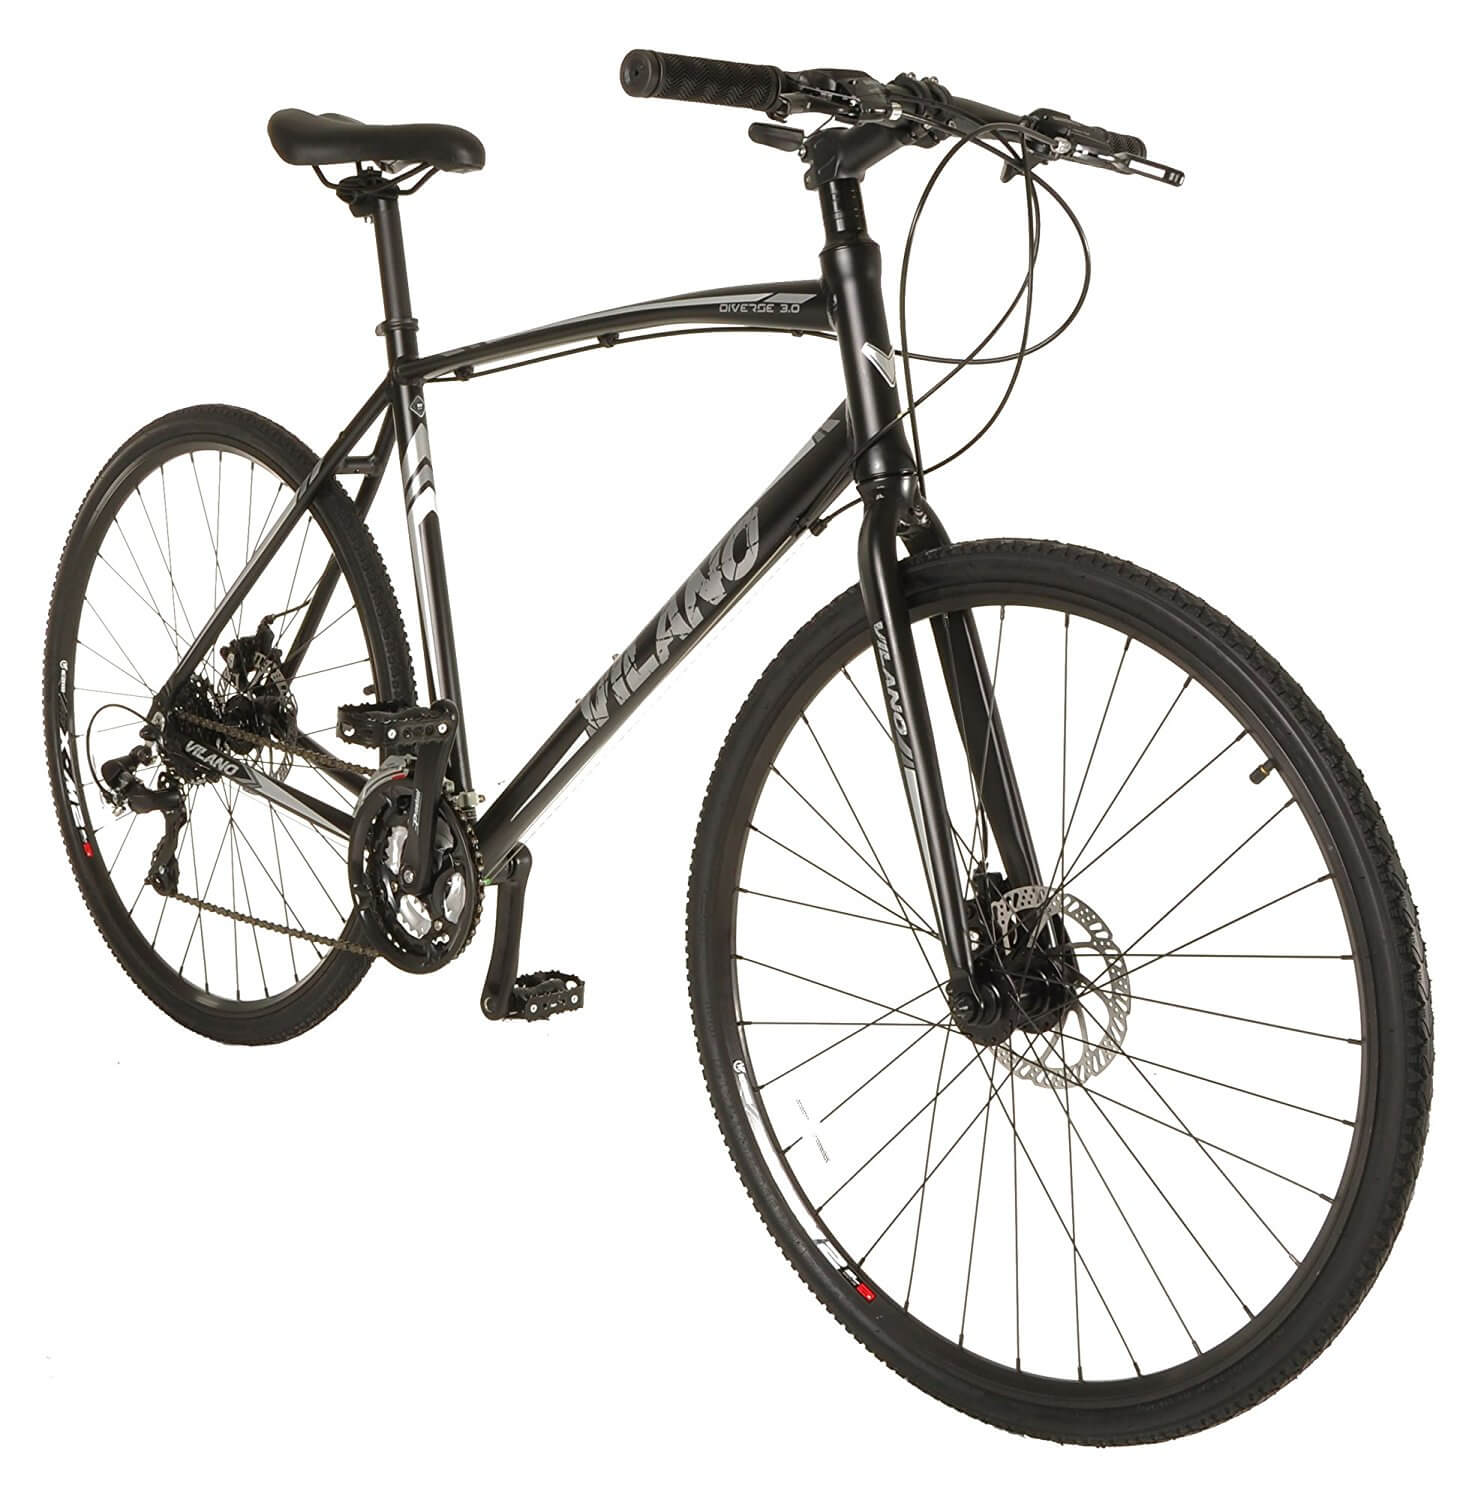 10 Best Hybrid Bikes Reviewed in 2019 | RunnerClick